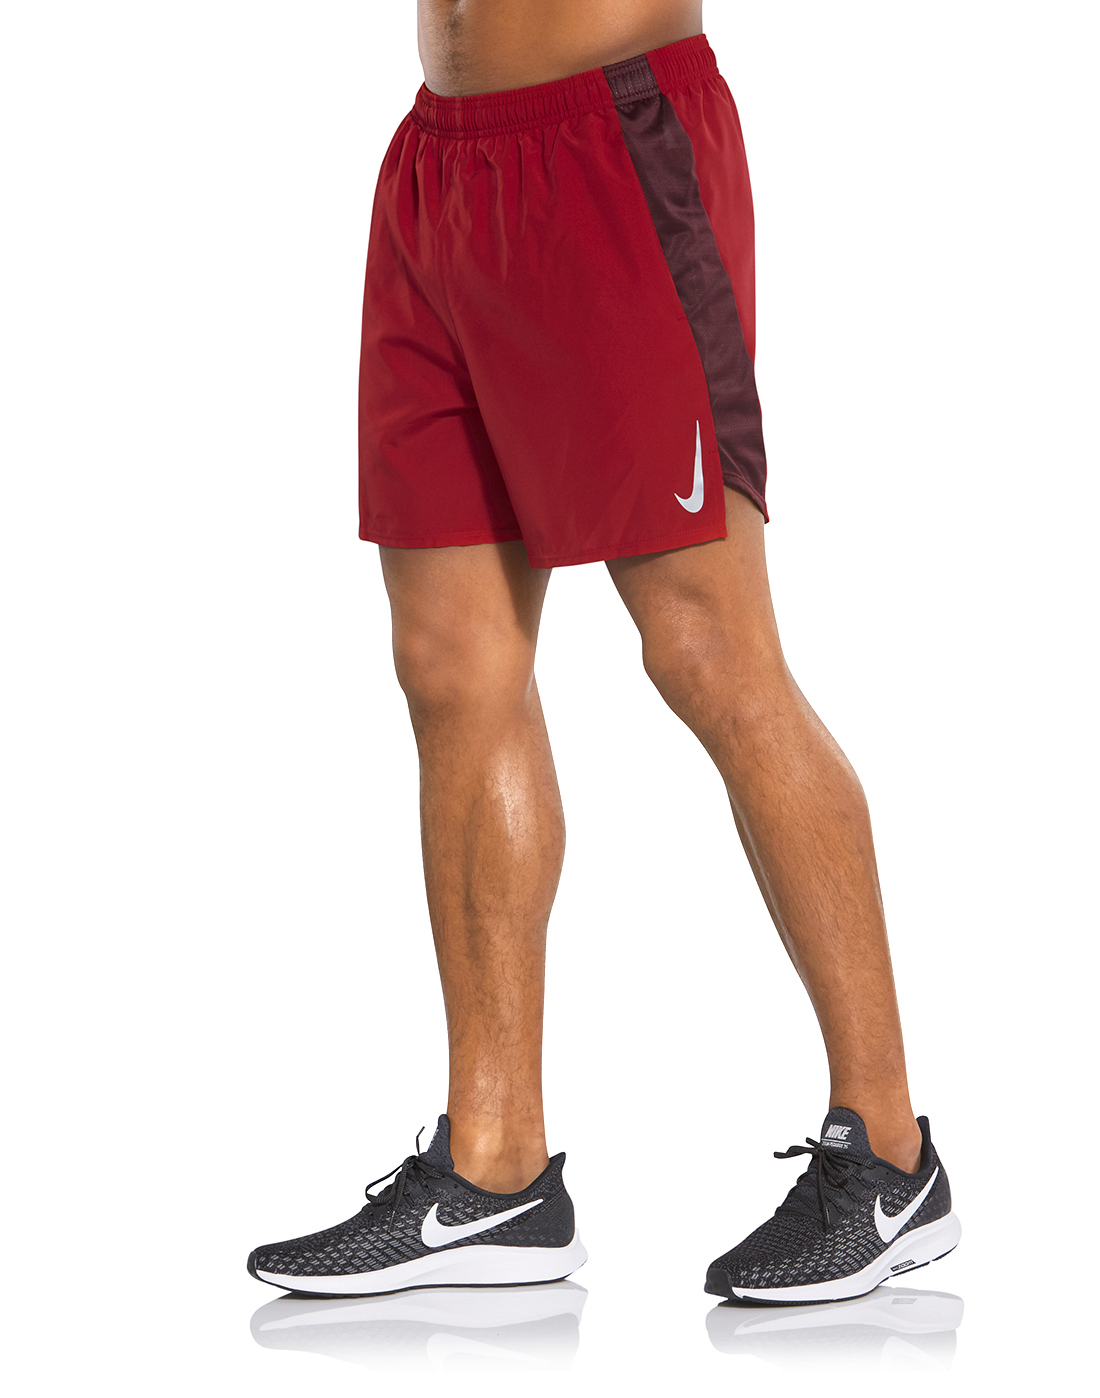 b30cda7f58f Men's Red Nike Challenger 5 Inch Shorts | Life Style Sports